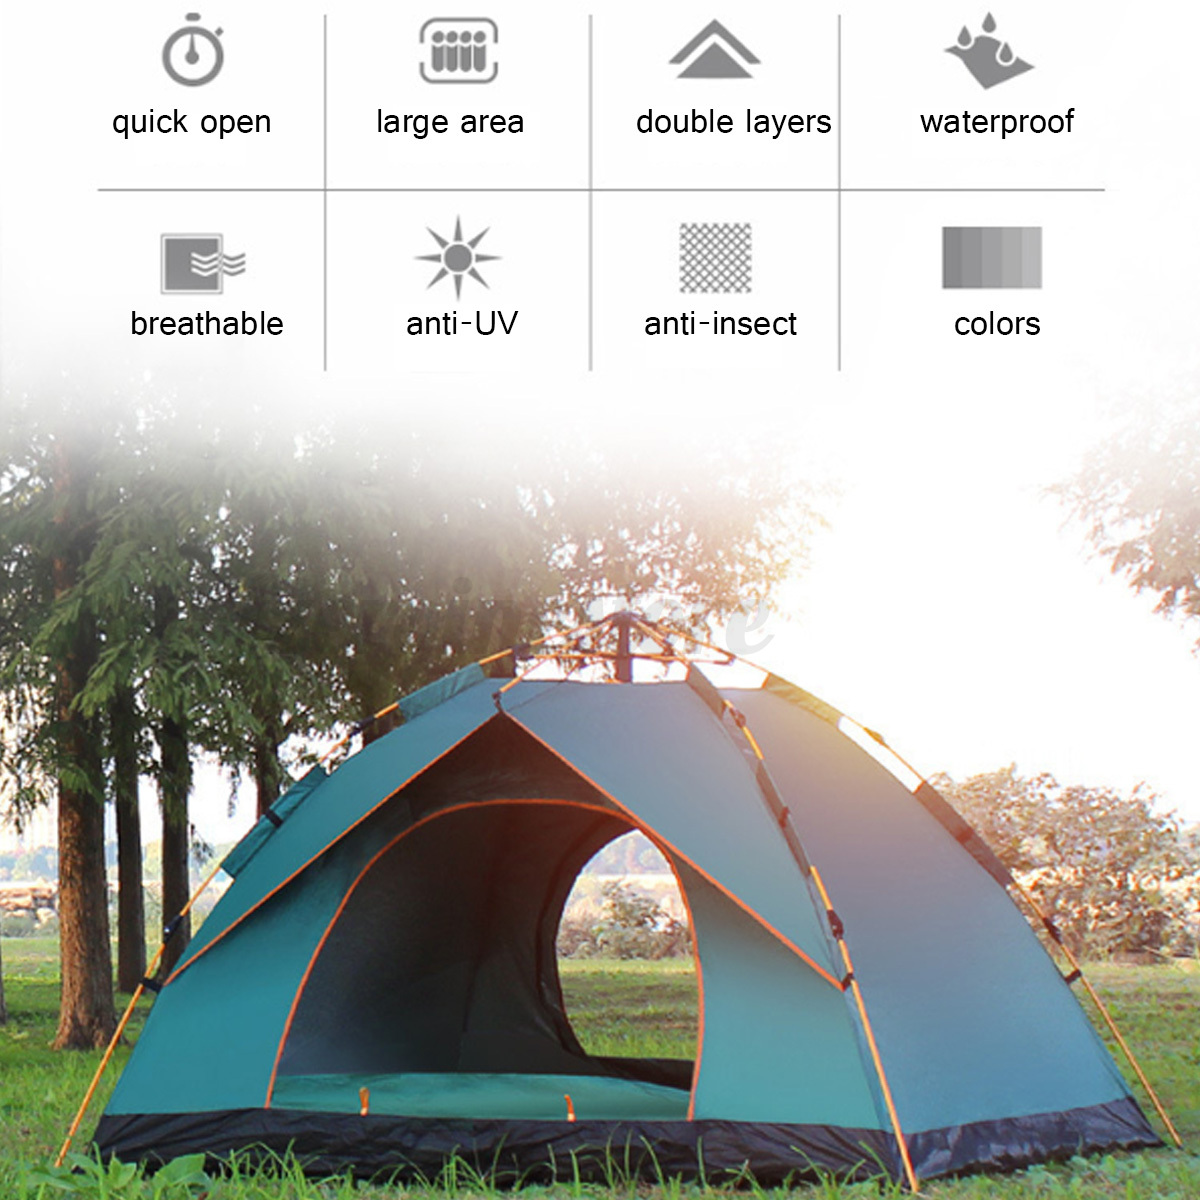 Automatic-3-4-Man-Person-Family-Tent-Camping-Anti-UV-Waterproof-Shelter-Hiking thumbnail 5